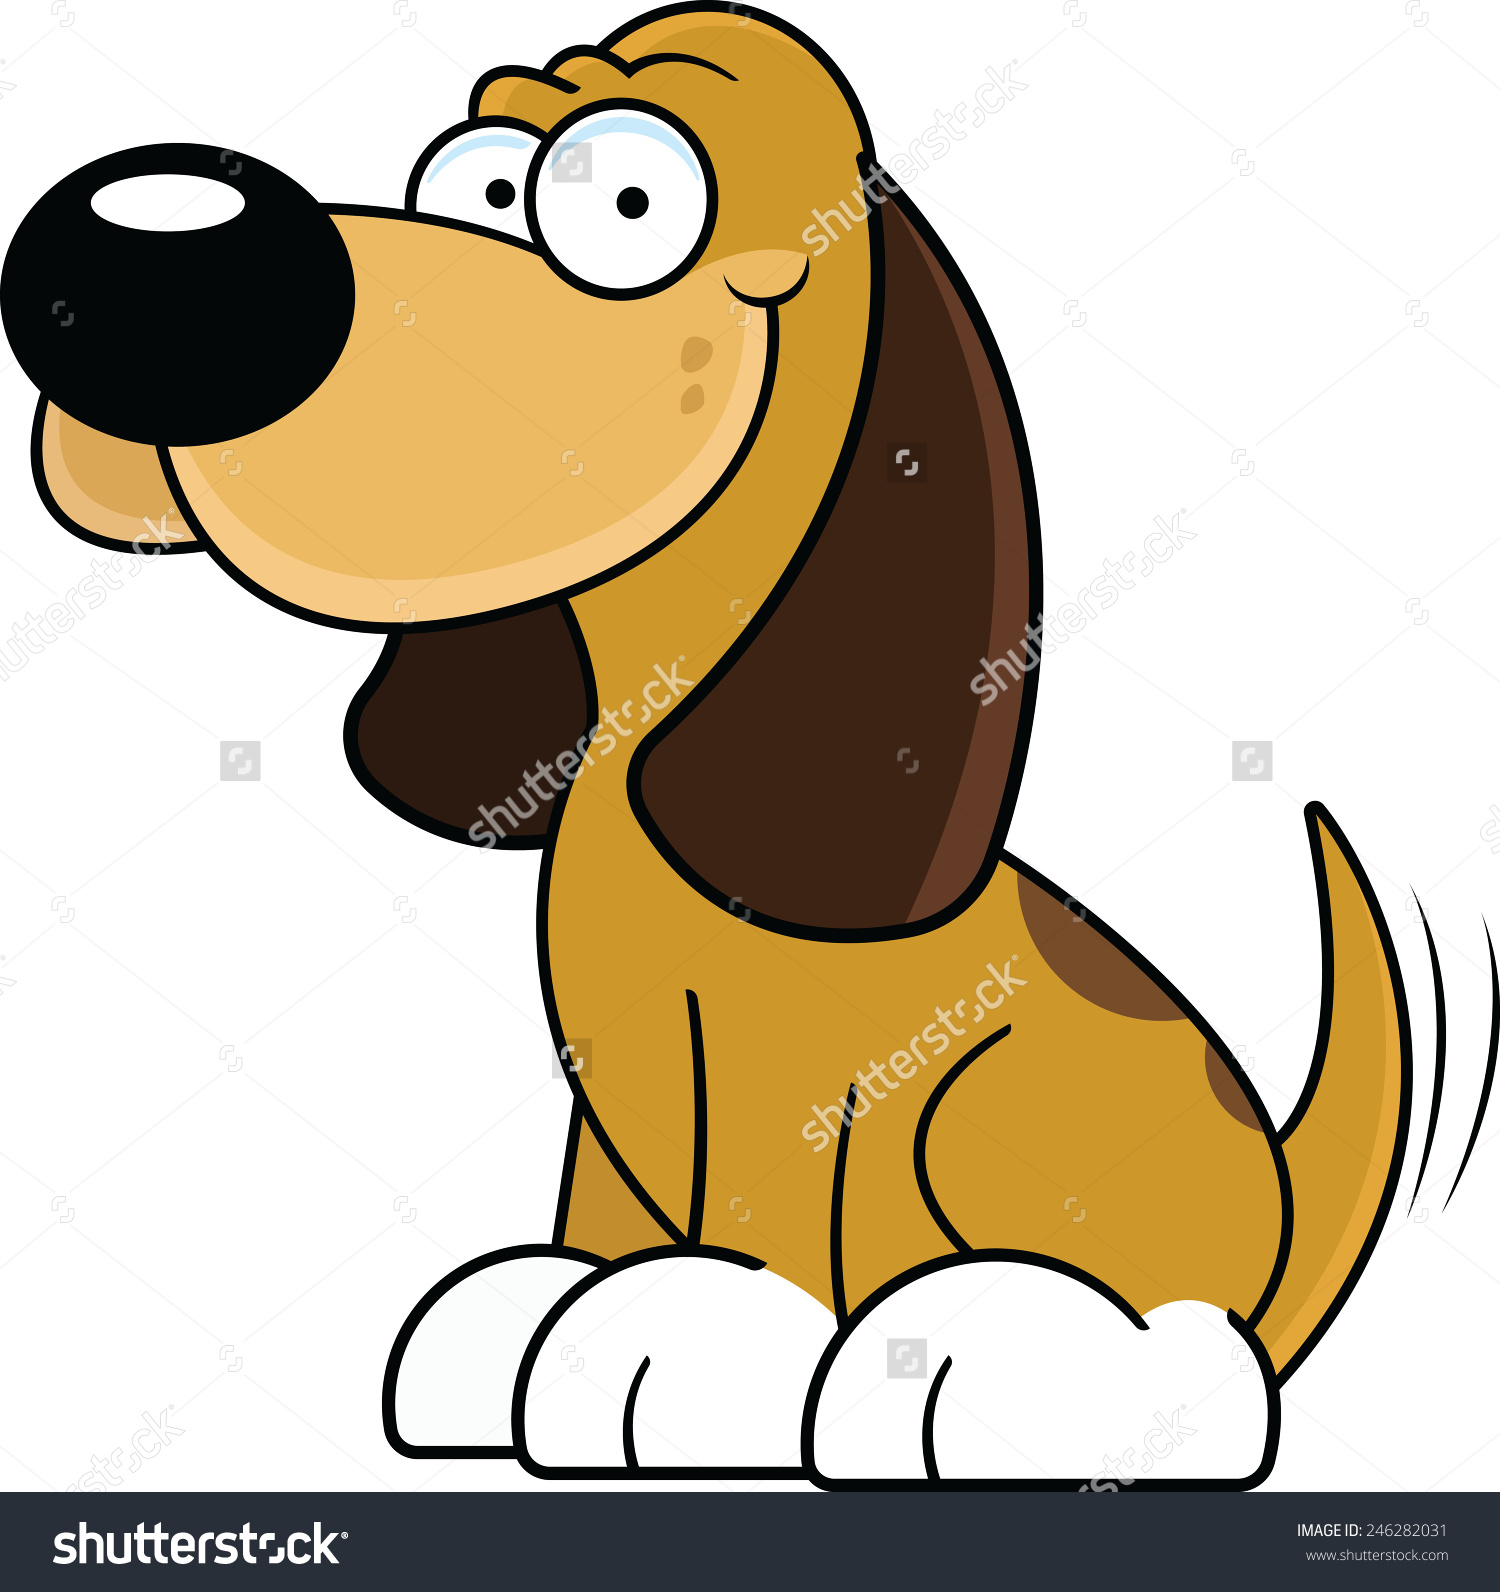 Wagging dog tail clipart clip free stock Cartoon Illustration Happy Brown Dog Wagging Stock Vector ... clip free stock